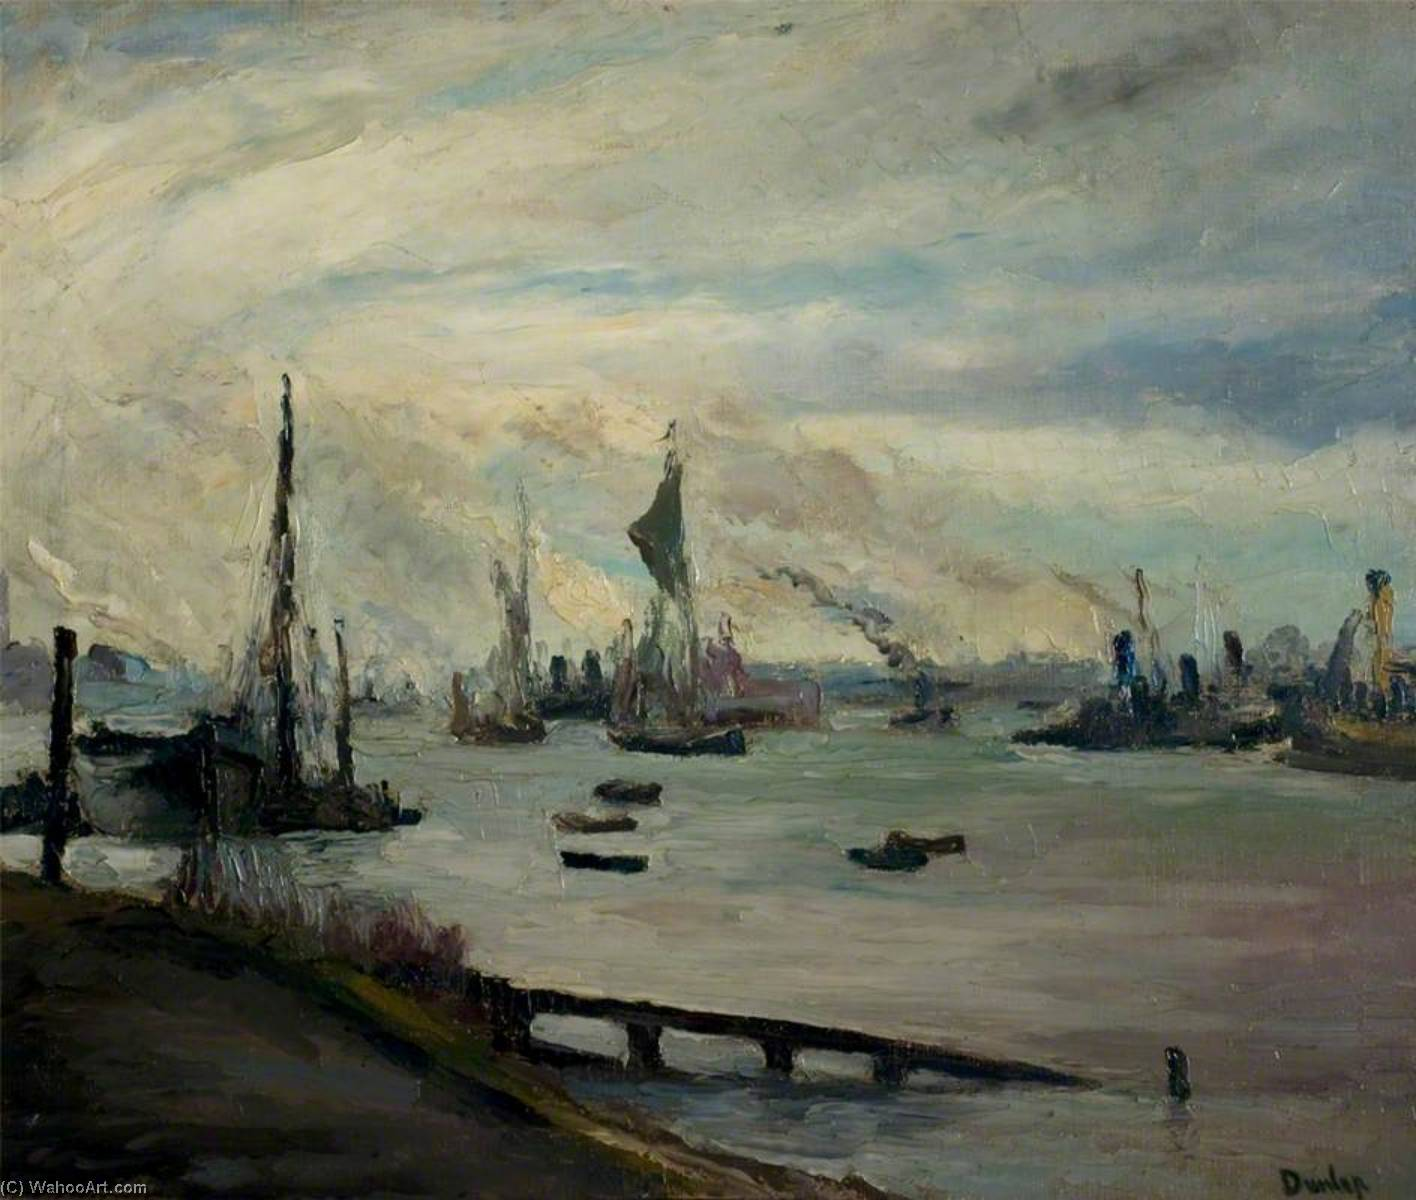 The Thames near Rotherhithe, London, Oil On Canvas by Ronald Ossory Dunlop (1894-1973, Ireland)